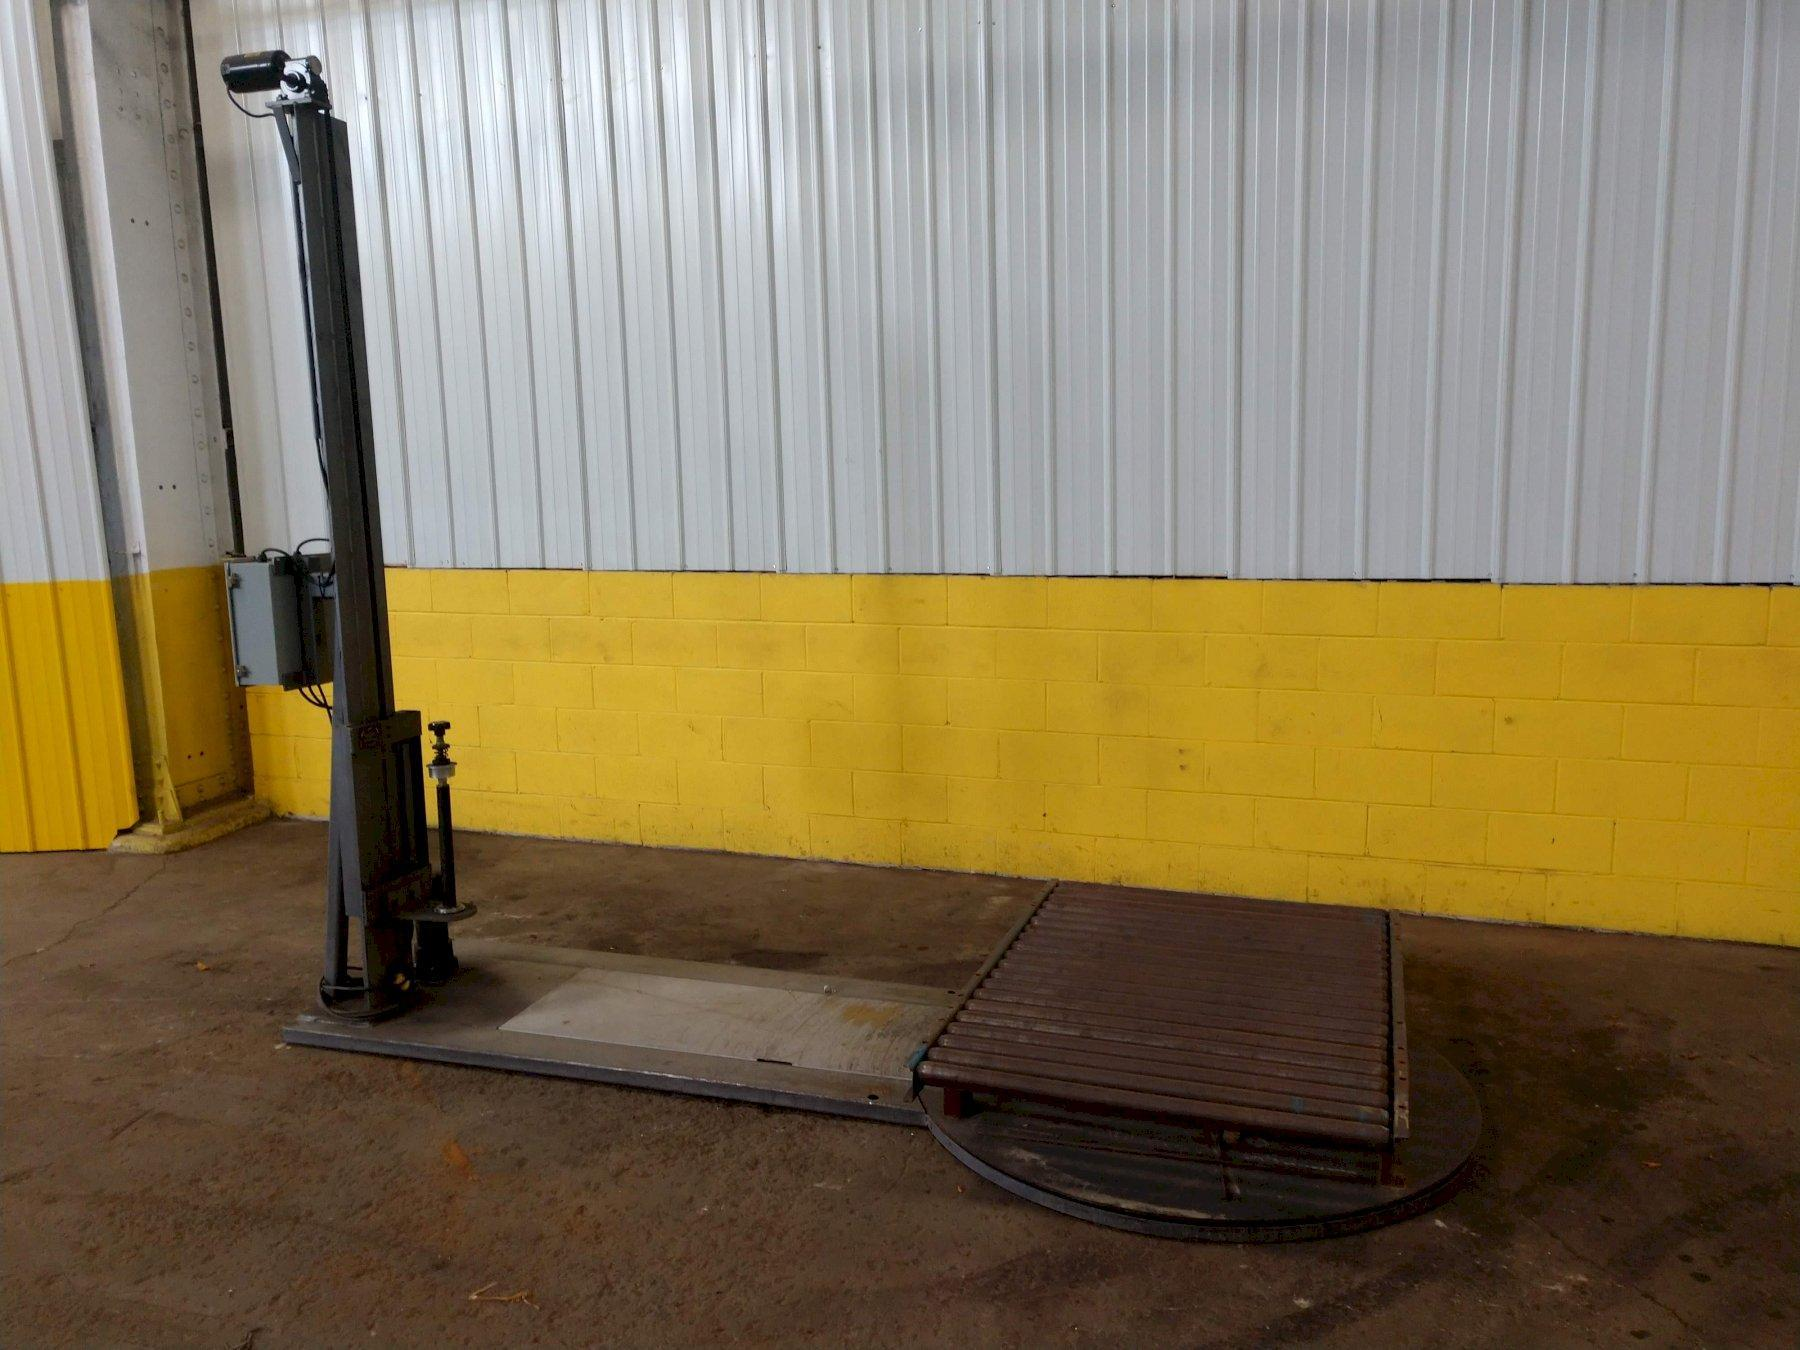 AMERIPAK COUSINS MODEL #PUP 2002 ROTARY TABLE PALLET STRETCH WRAPPER: STOCK #13602